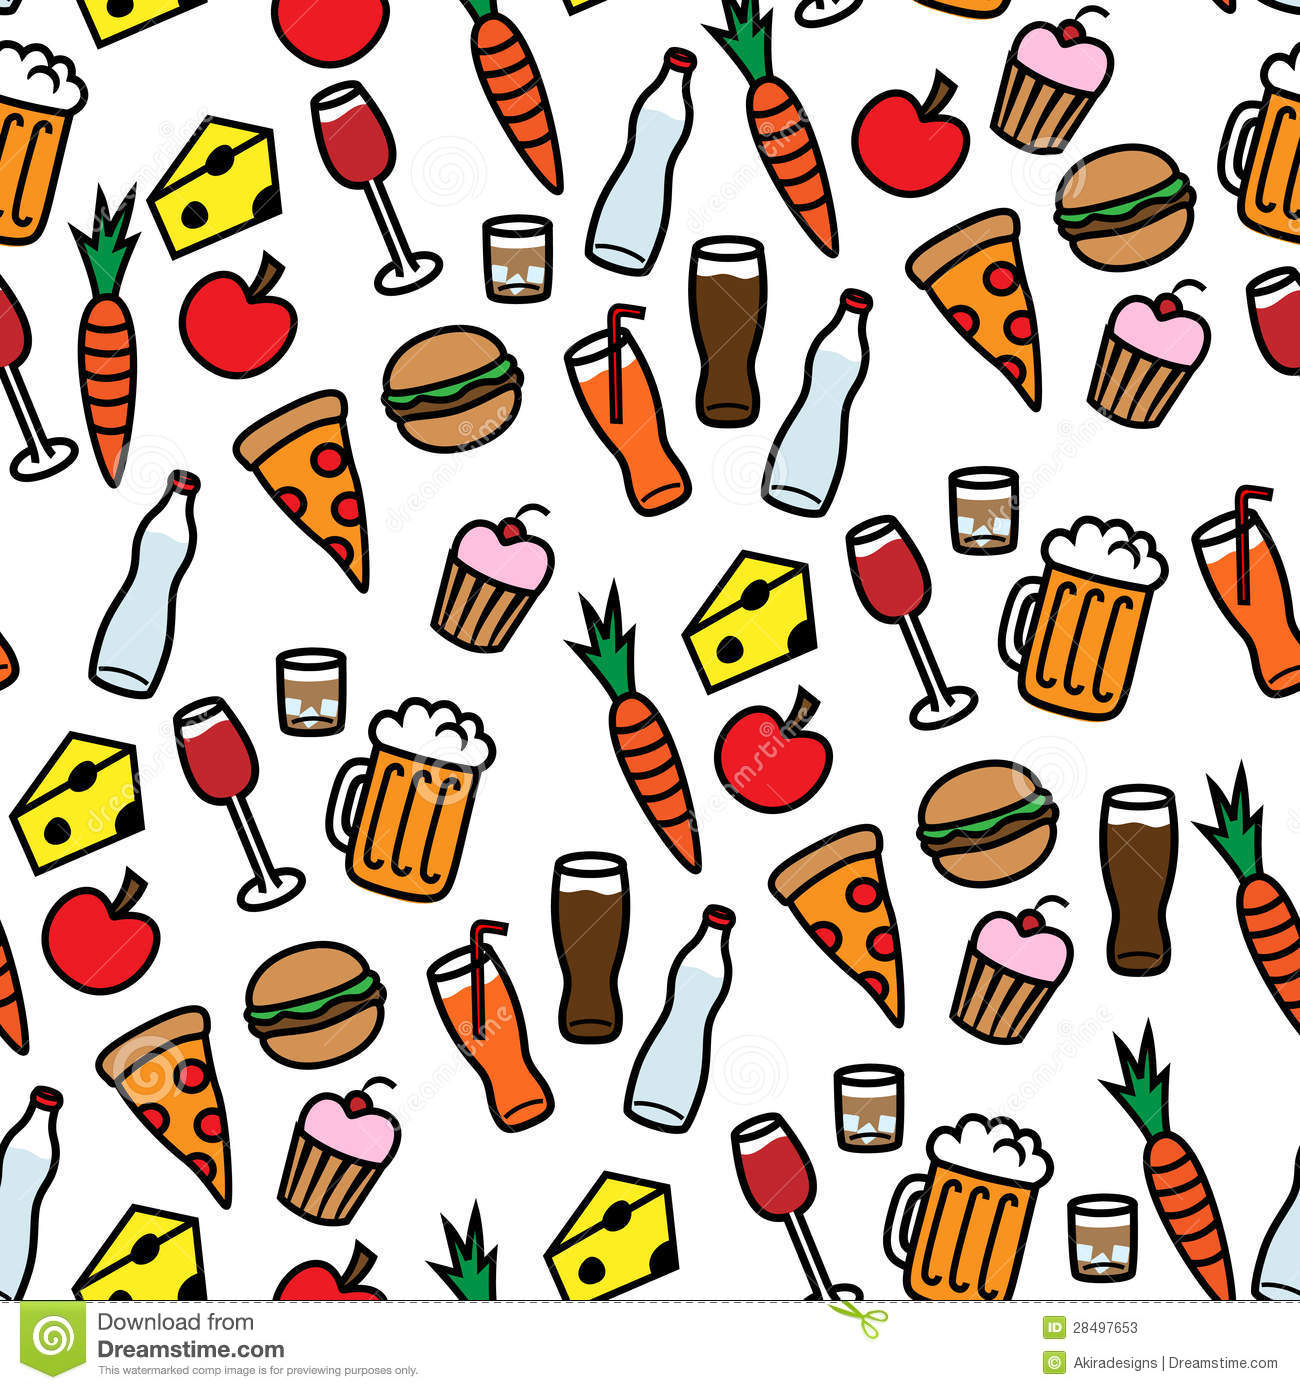 Cute Wallpapers For Bff For 5 Seamless Background Pattern With Food And Drinks Stock